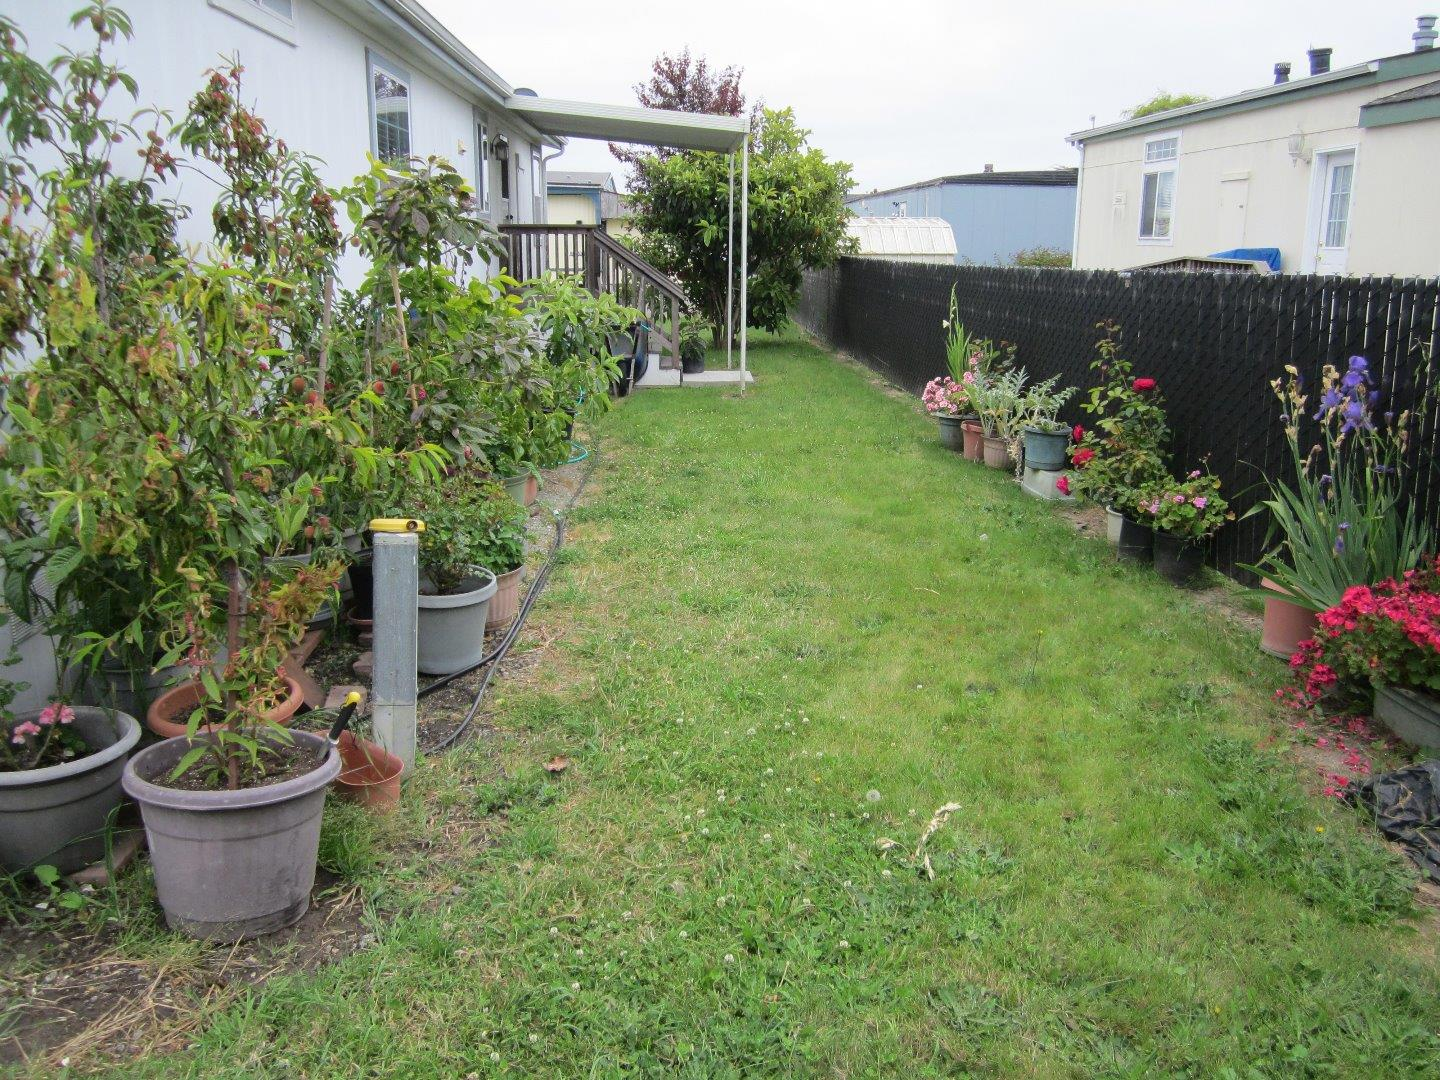 Additional photo for property listing at 800 Dolan Road  Moss Landing, California 95039 United States